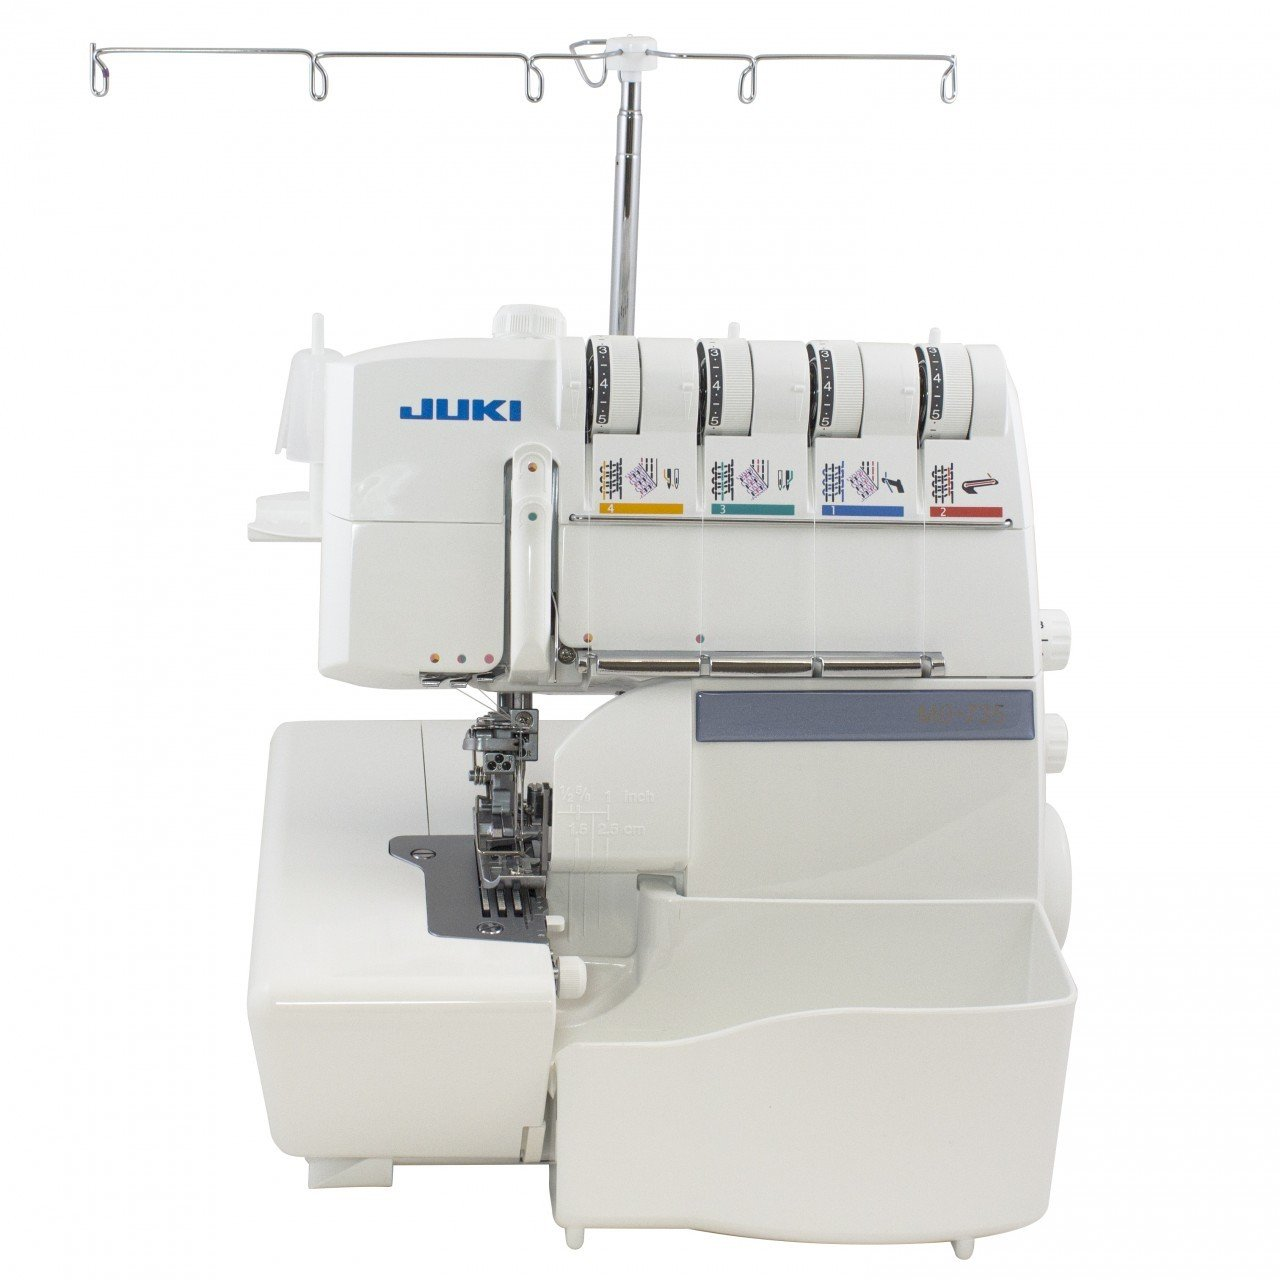 Juki MO-735 5-Thread Serger & Cover Hem Reviews 8